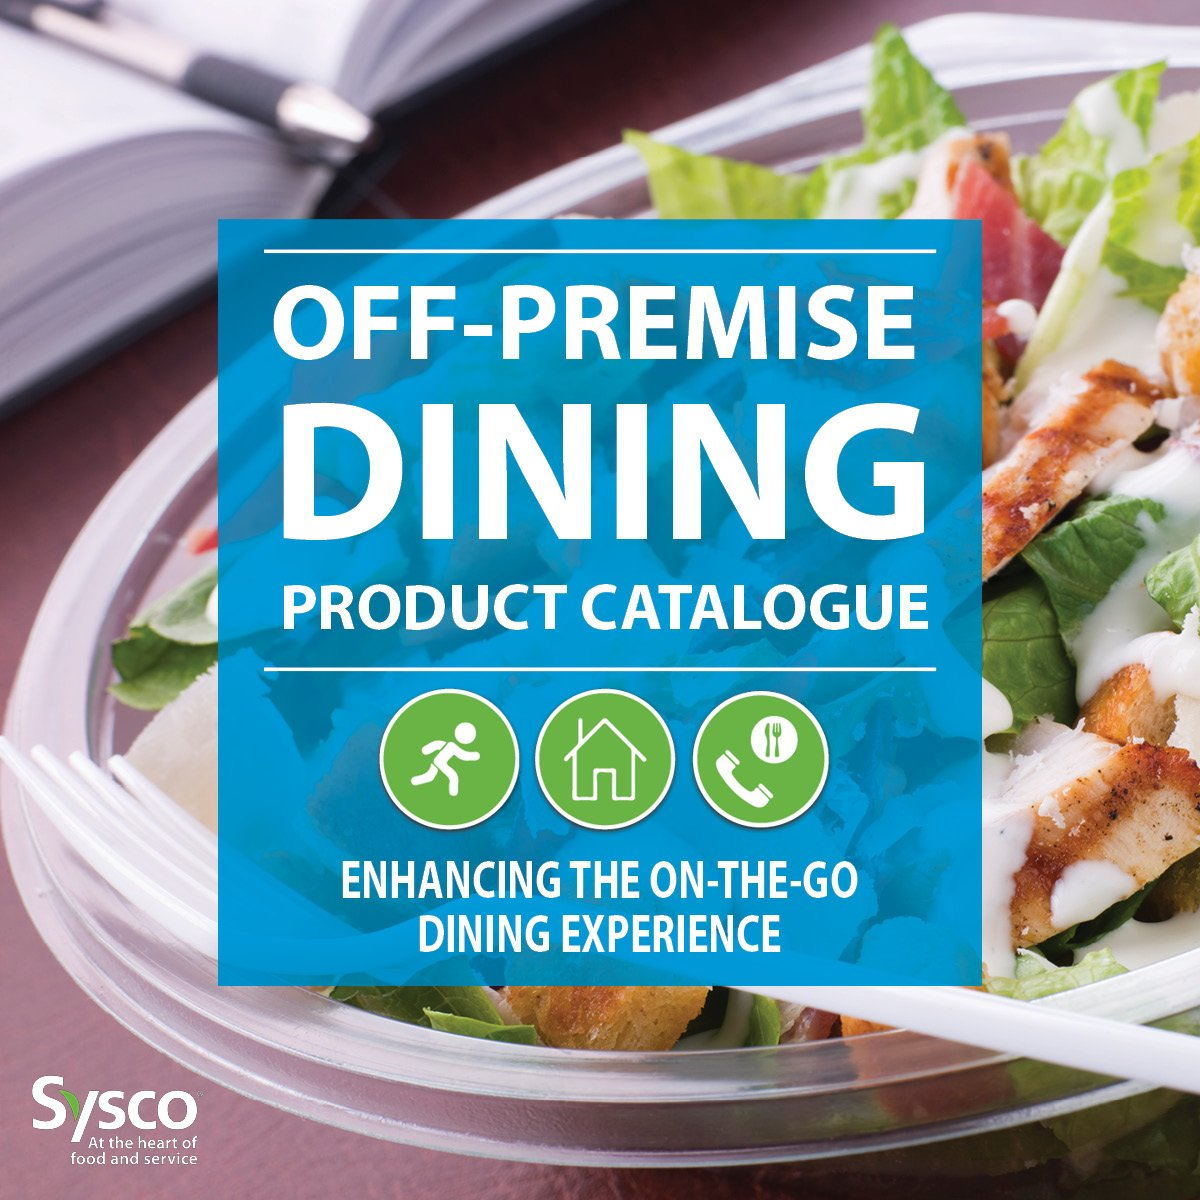 ... regardless of where they consume it. http://www.sysco.ca/catalogues #takeoutfood #packaging #takeout #takeoutdeliverypic.twitter.com/O5CuN3Jk8o